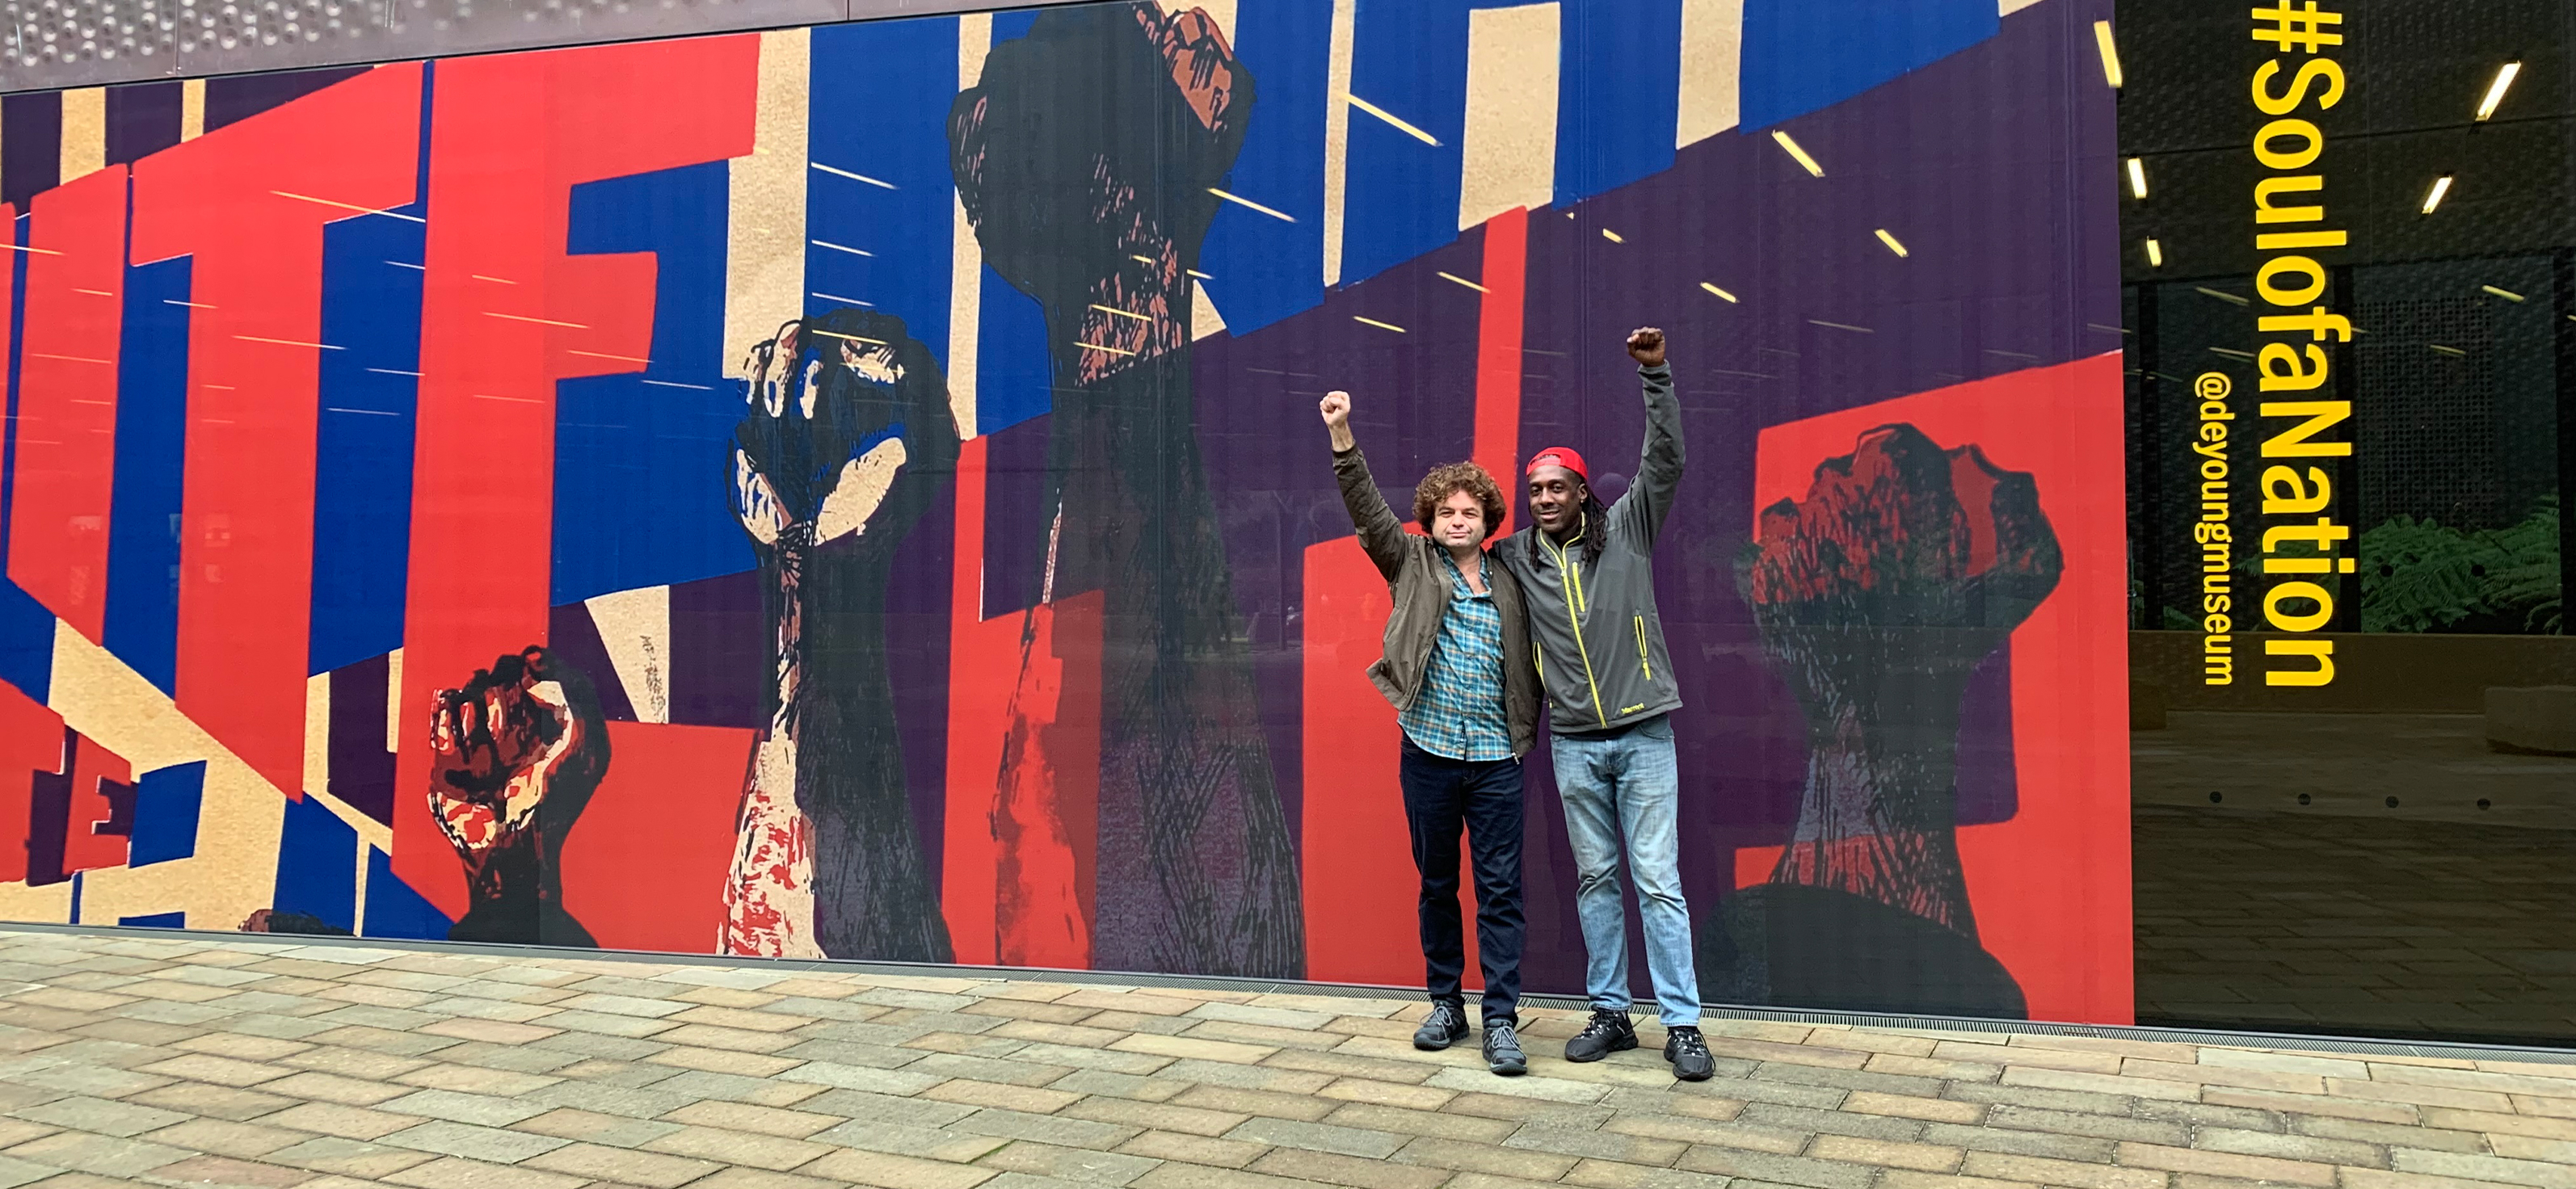 Two men stand together with one arm around each other and the other arm raised, in front of the red and blue graphic promoting the exhibition.